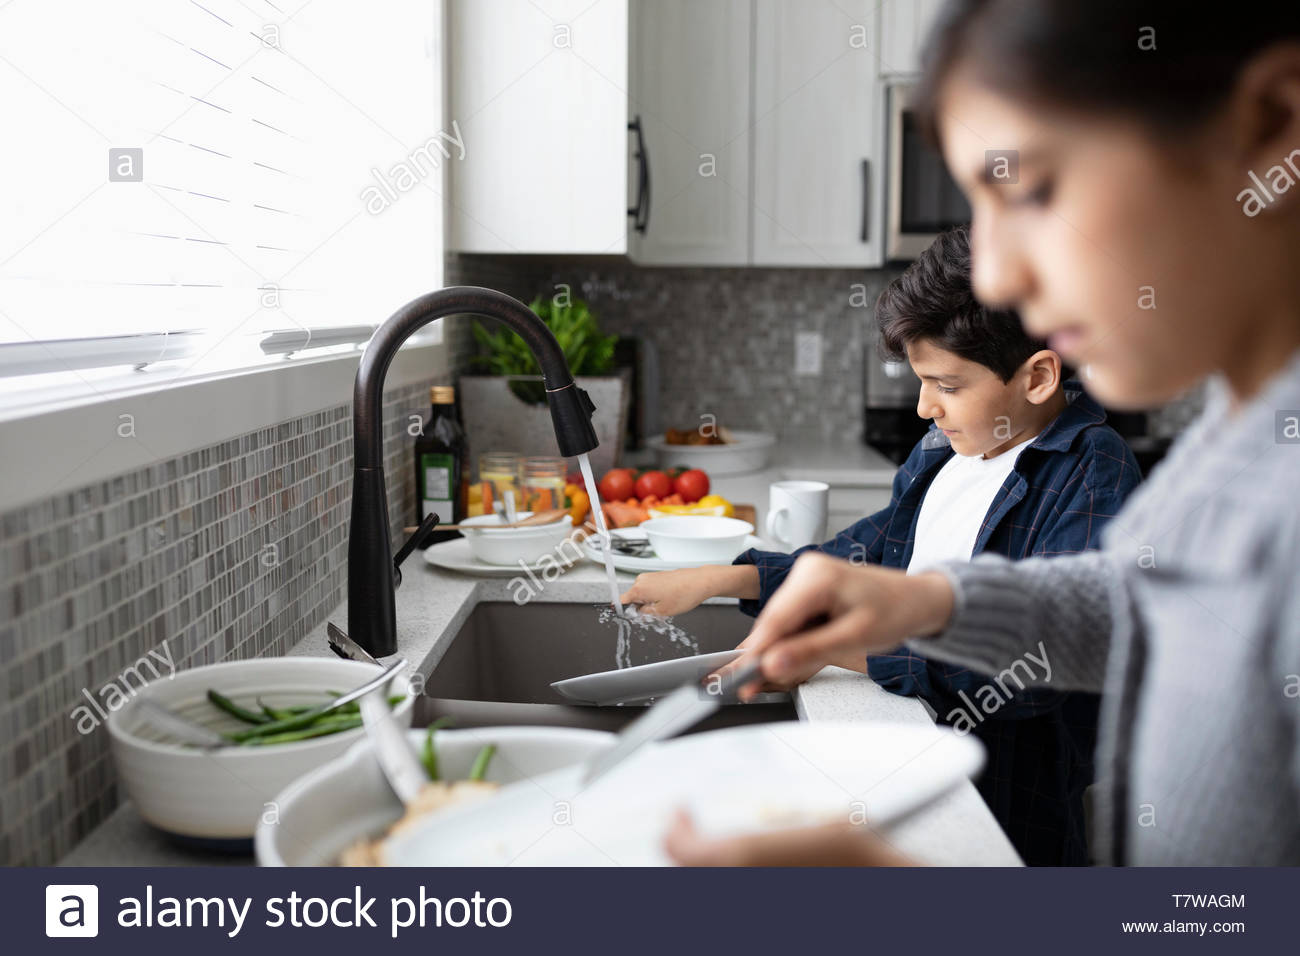 Brother and sister doing dishes at kitchen sink - Stock Image